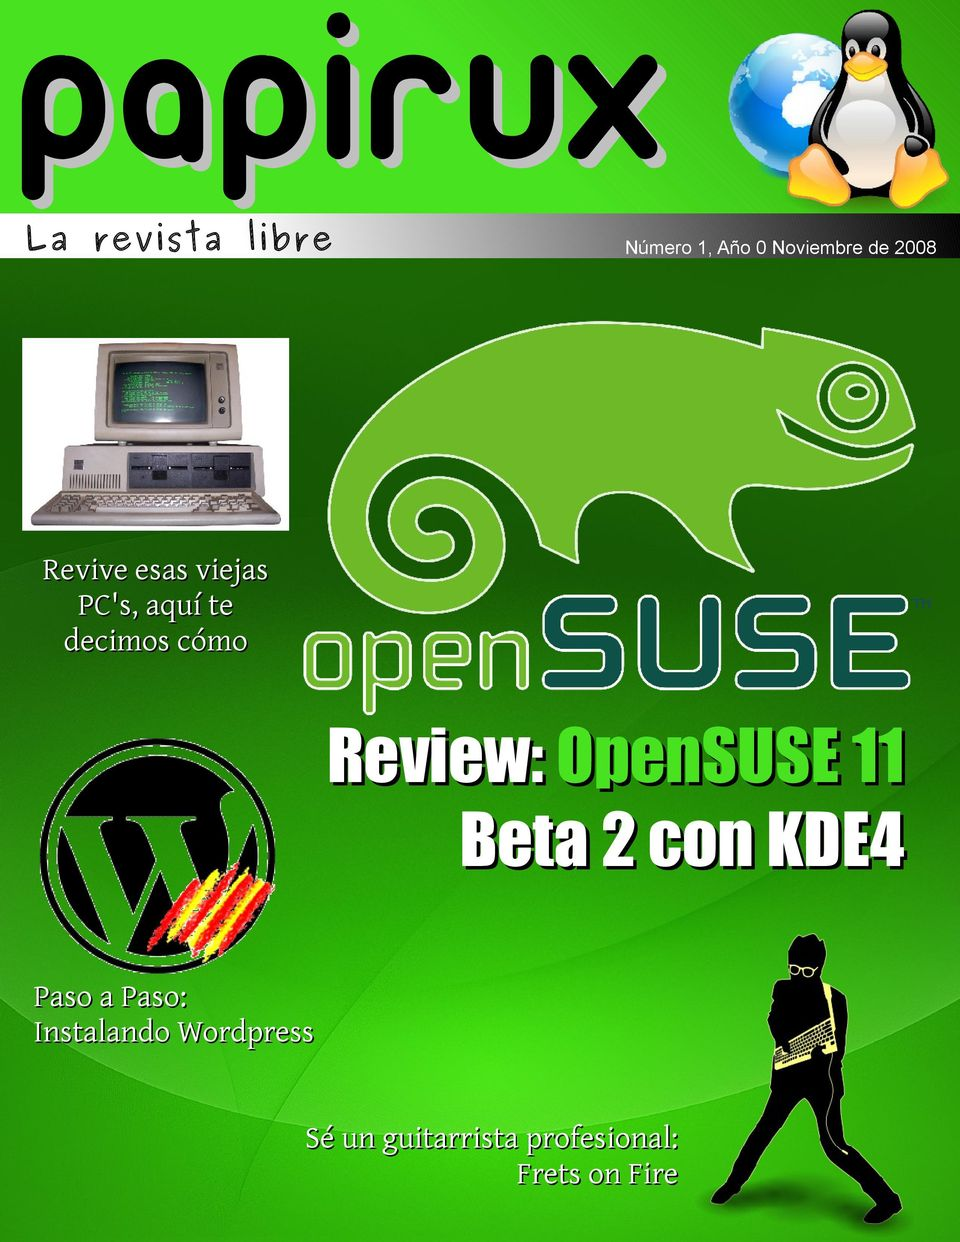 Review: OpenSUSE 11 Beta 2 con KDE4 Paso a Paso: